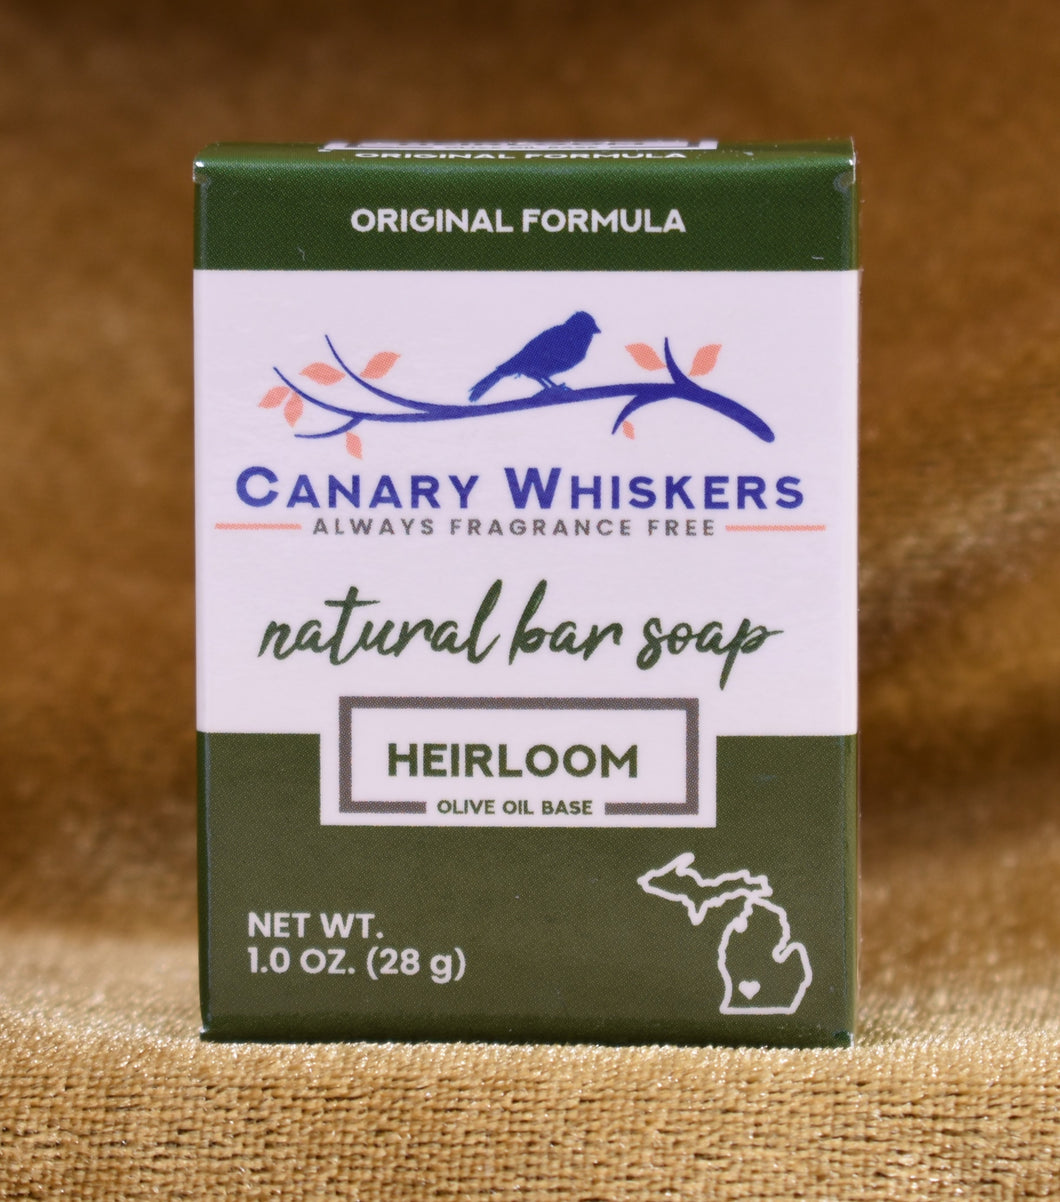 Heirloom series soap